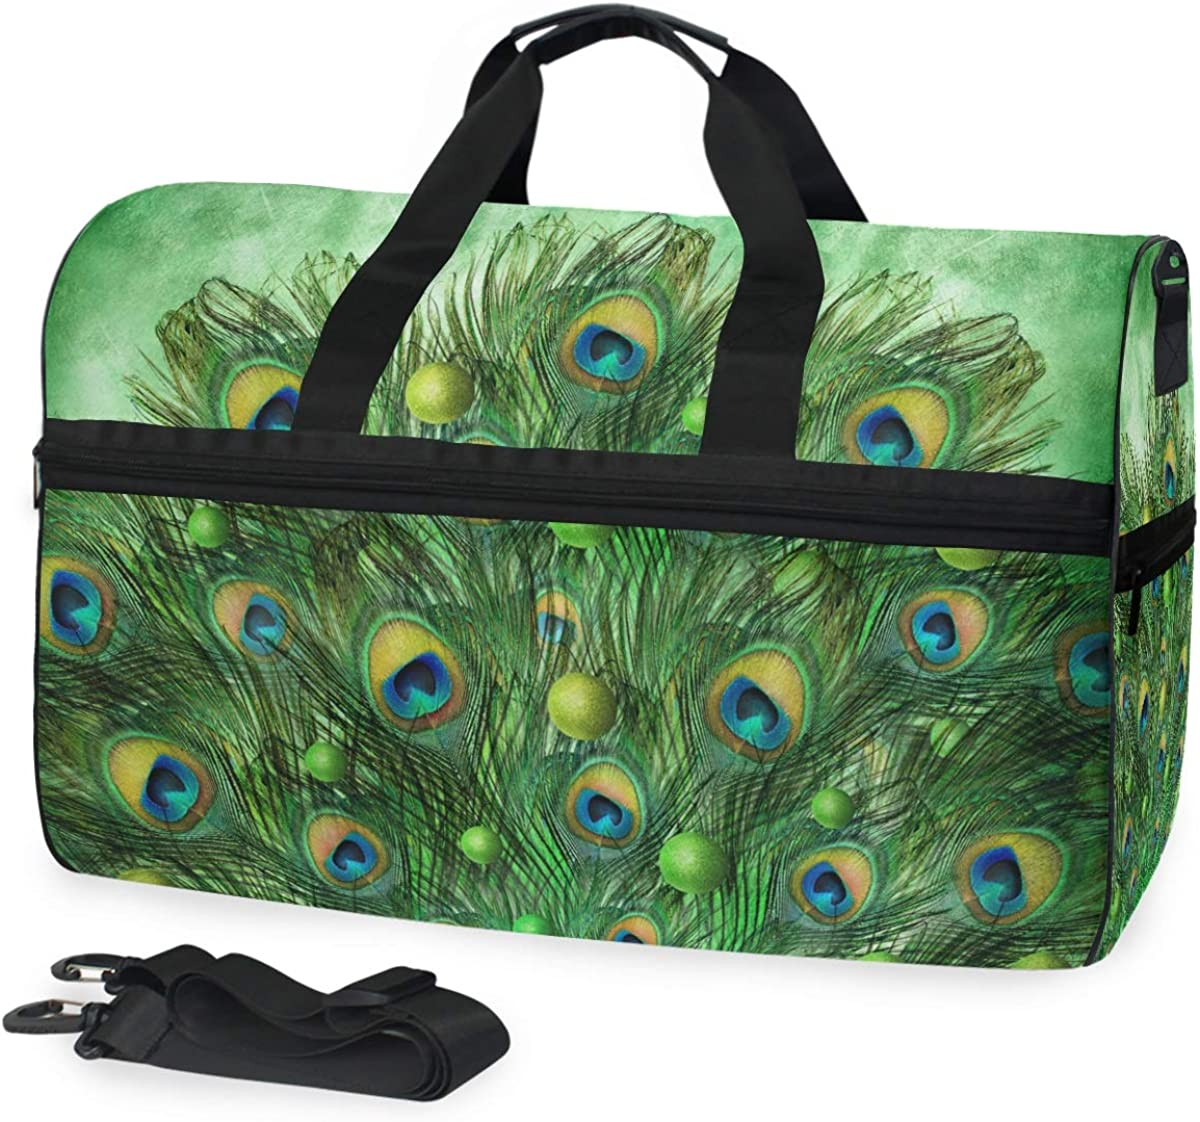 Large Capacity Travel Bag Peacock Feathers Green Gym Bag for Men Women With Shoe Compartment Sports Bag